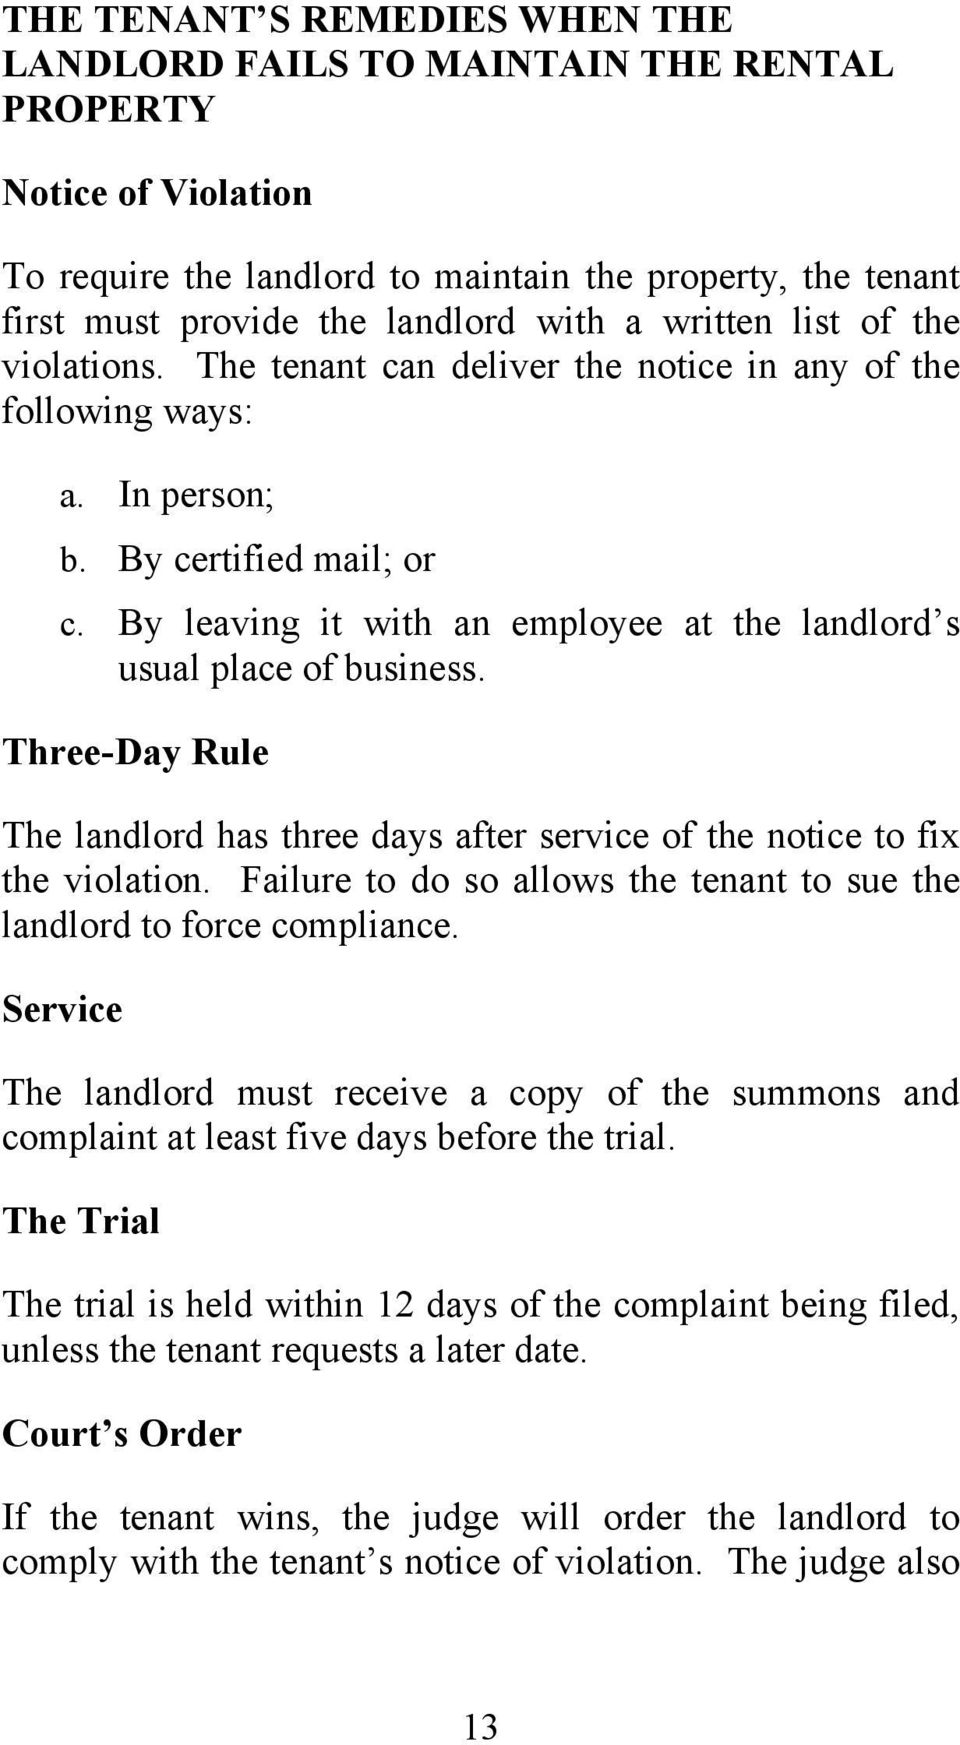 By leaving it with an employee at the landlord s usual place of business. Three-Day Rule The landlord has three days after service of the notice to fix the violation.